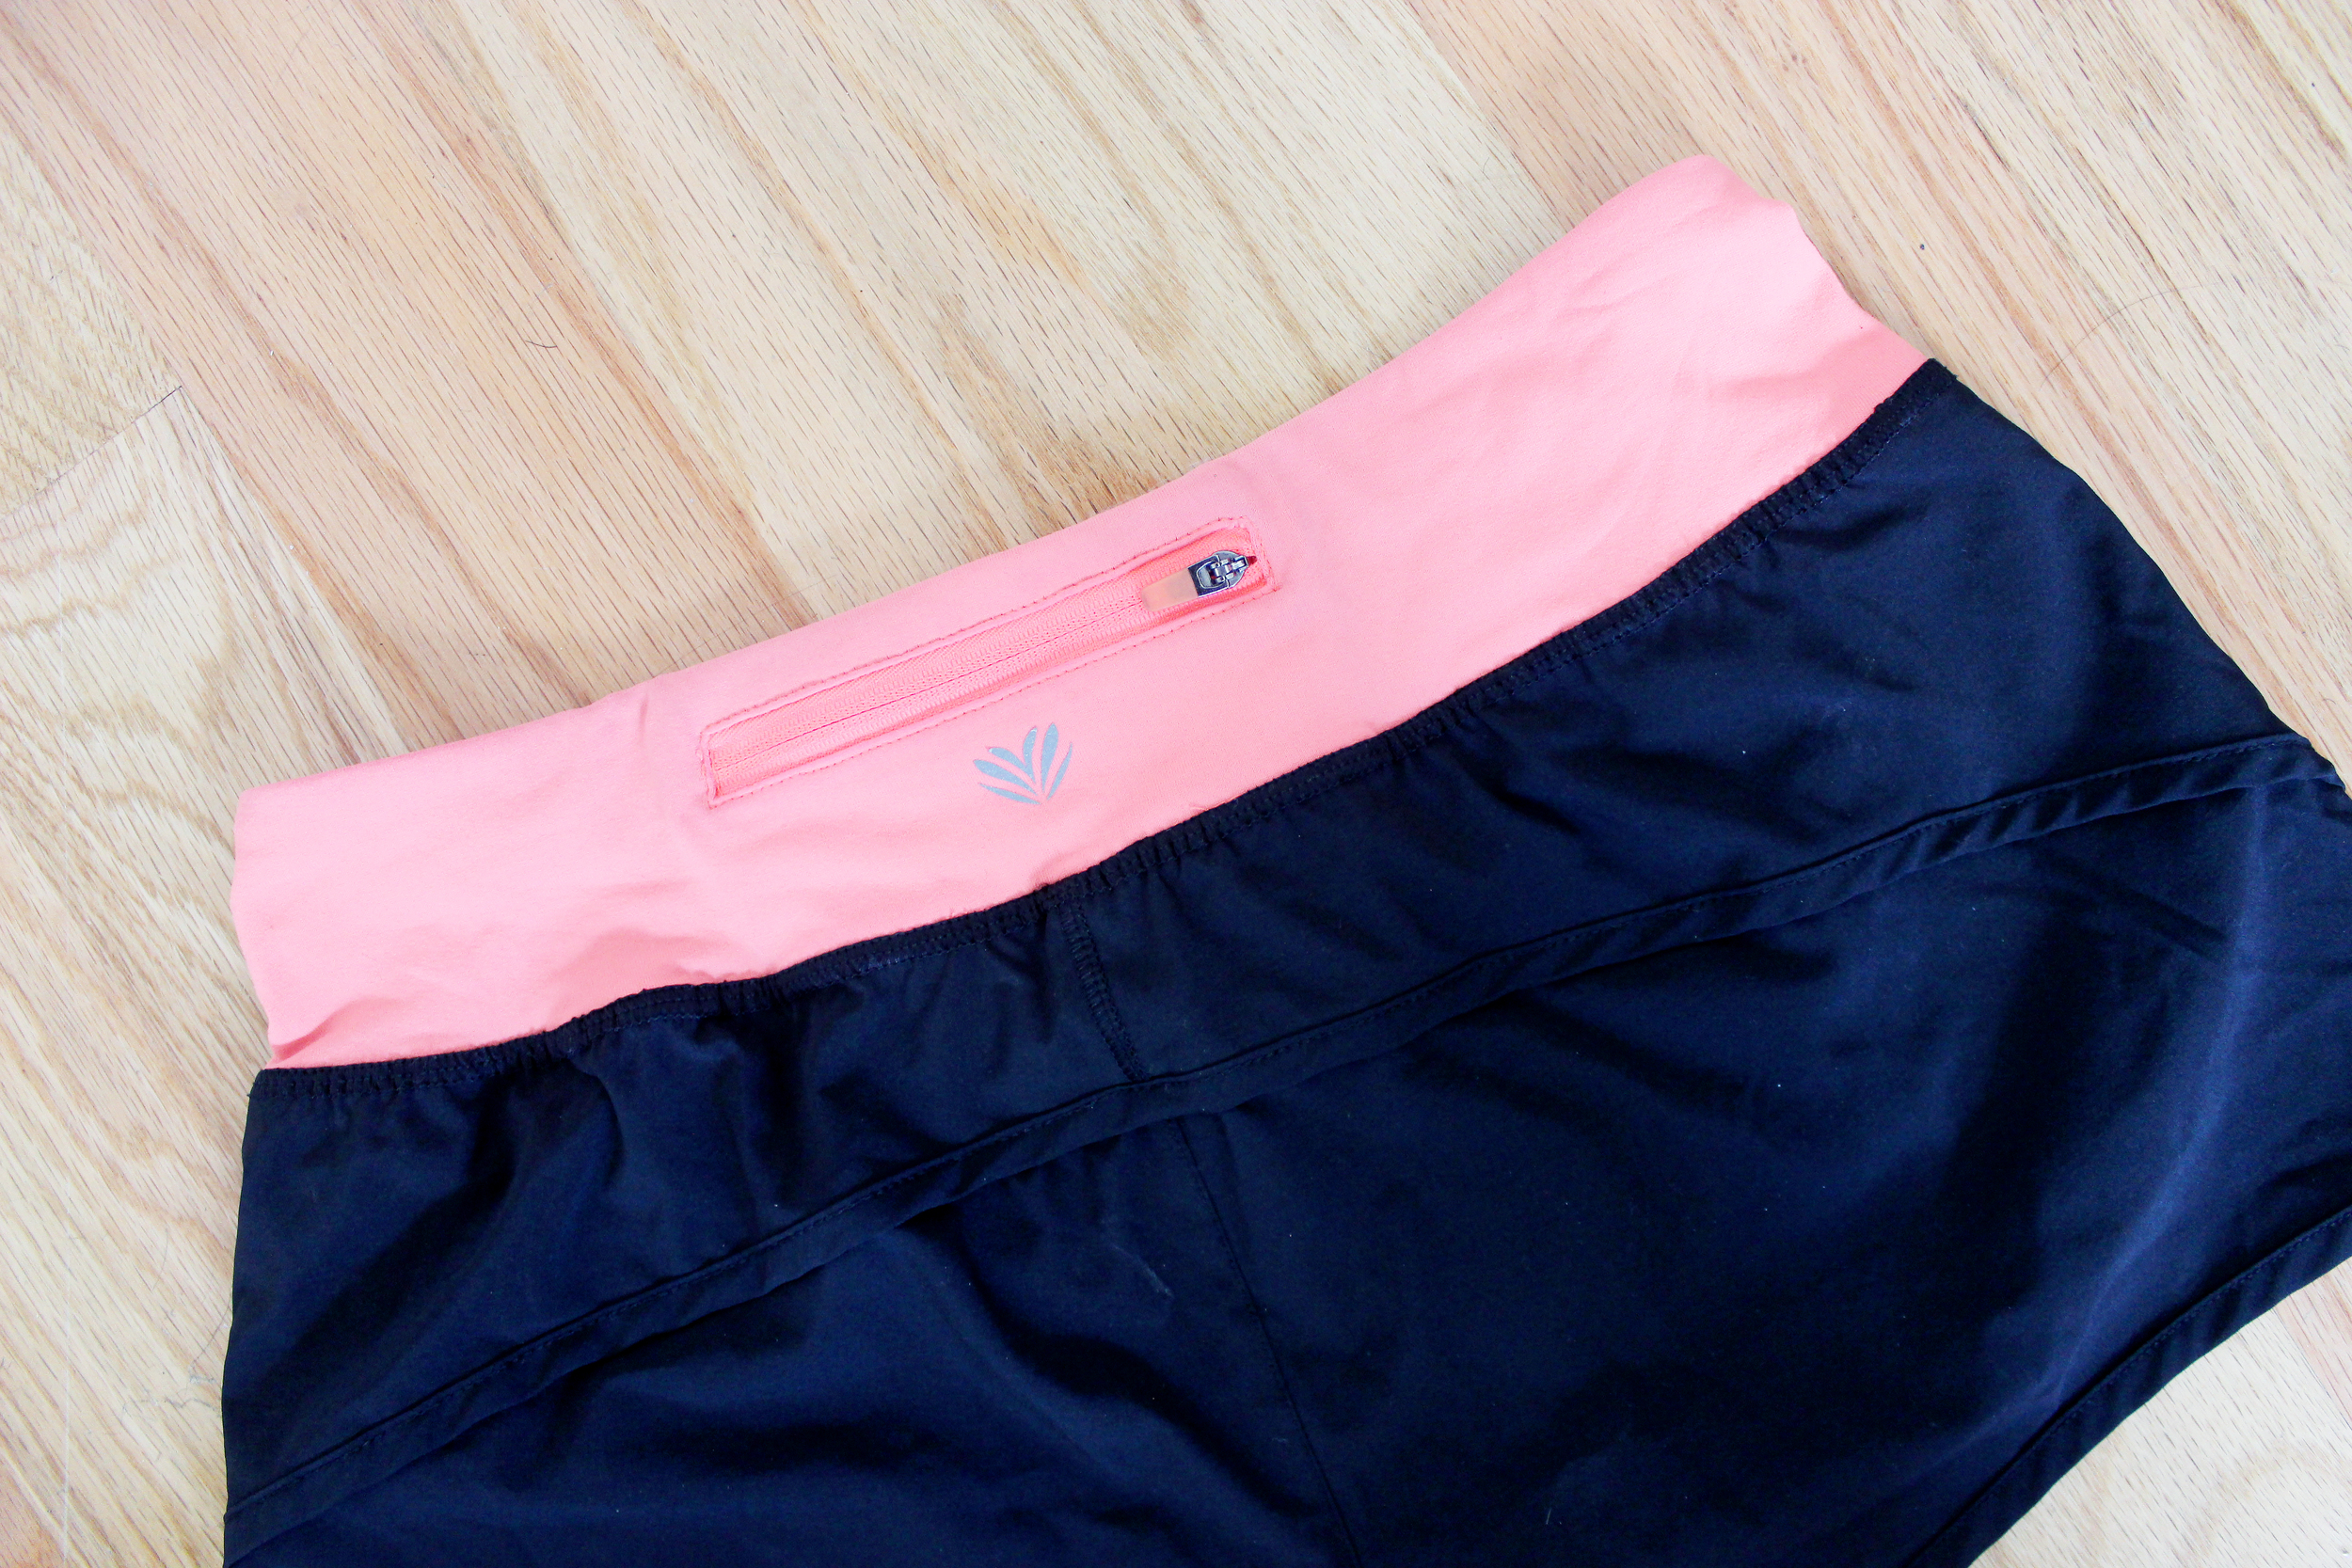 That one zipper makes a world of difference in these running shorts.